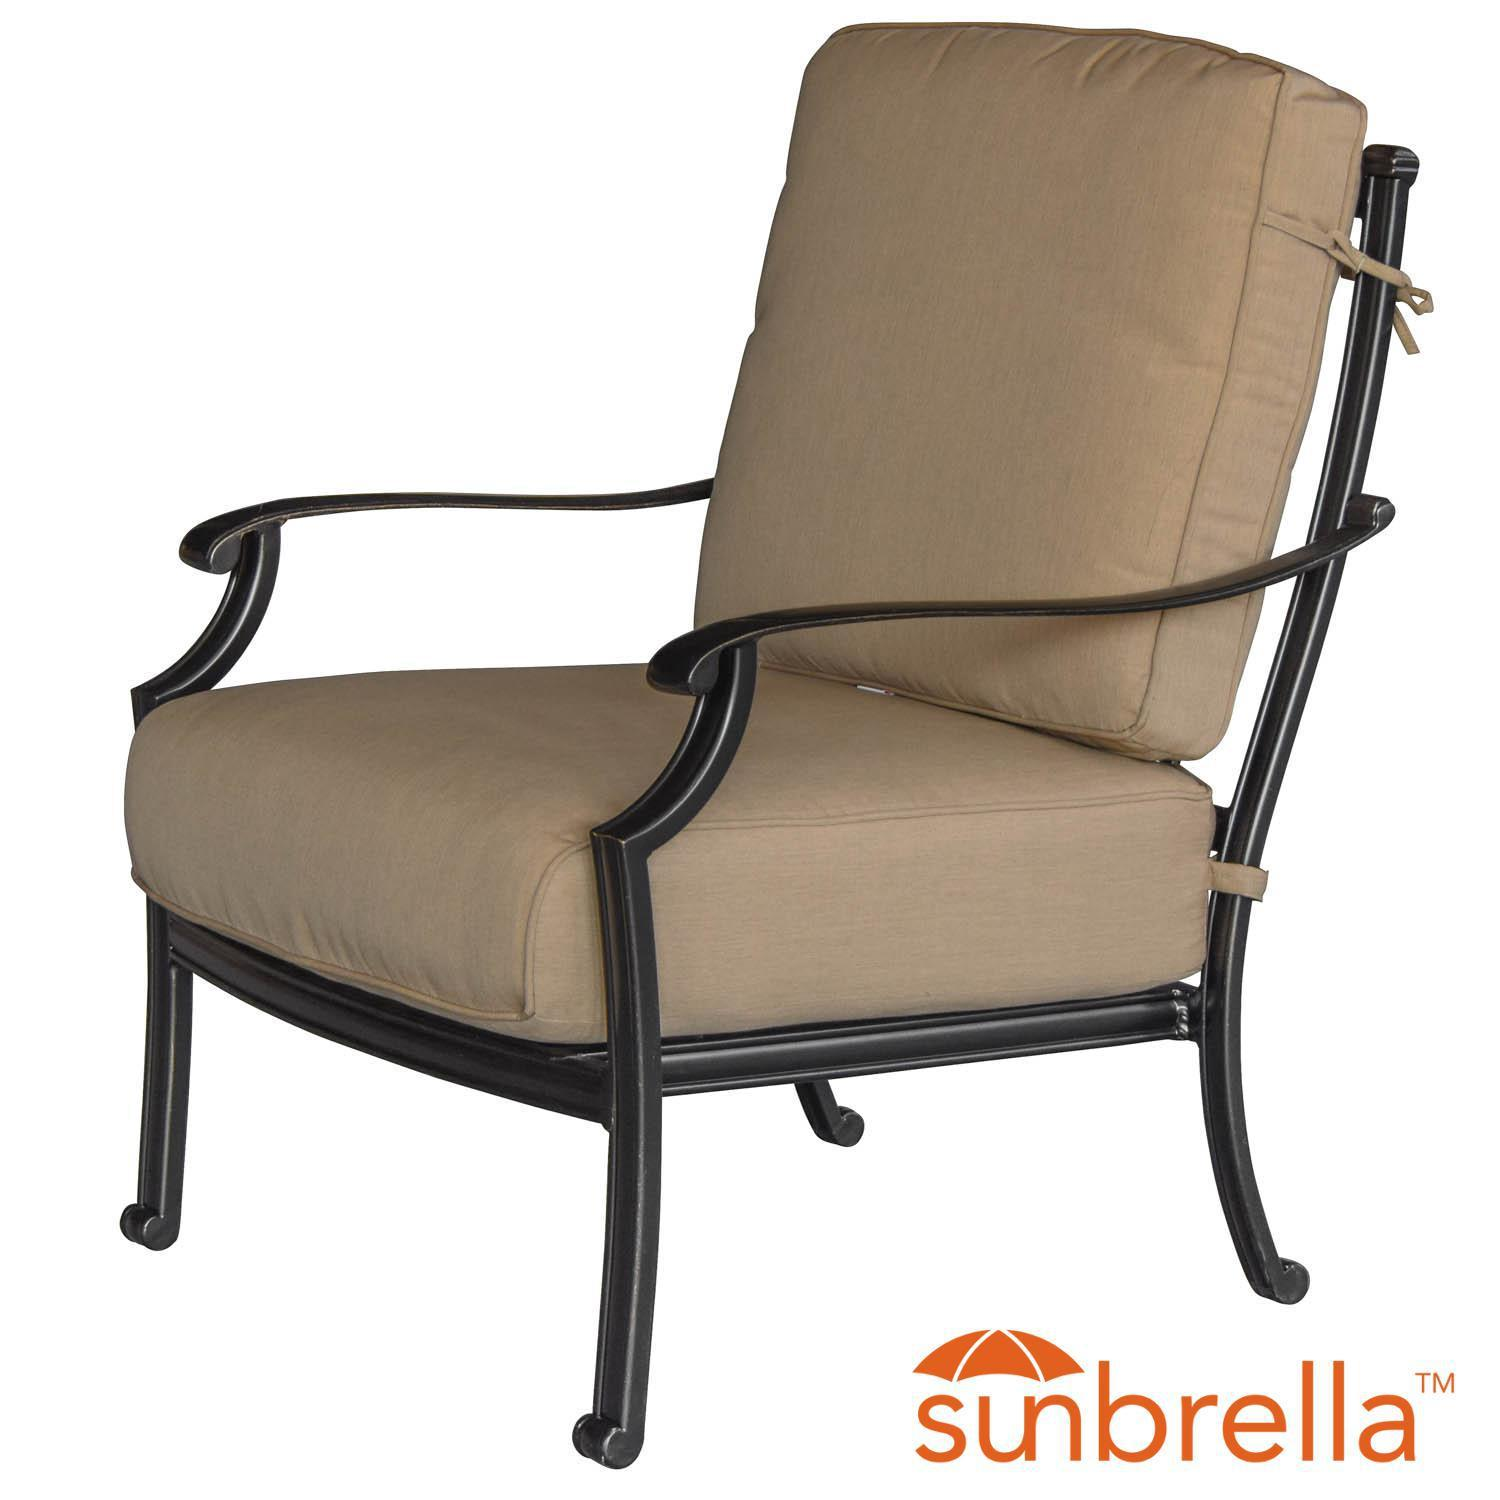 Bocage Cast Aluminum Patio Club Chair W/ Sunbrella Heather Beige Cushions By Lakeview Outdoor Designs